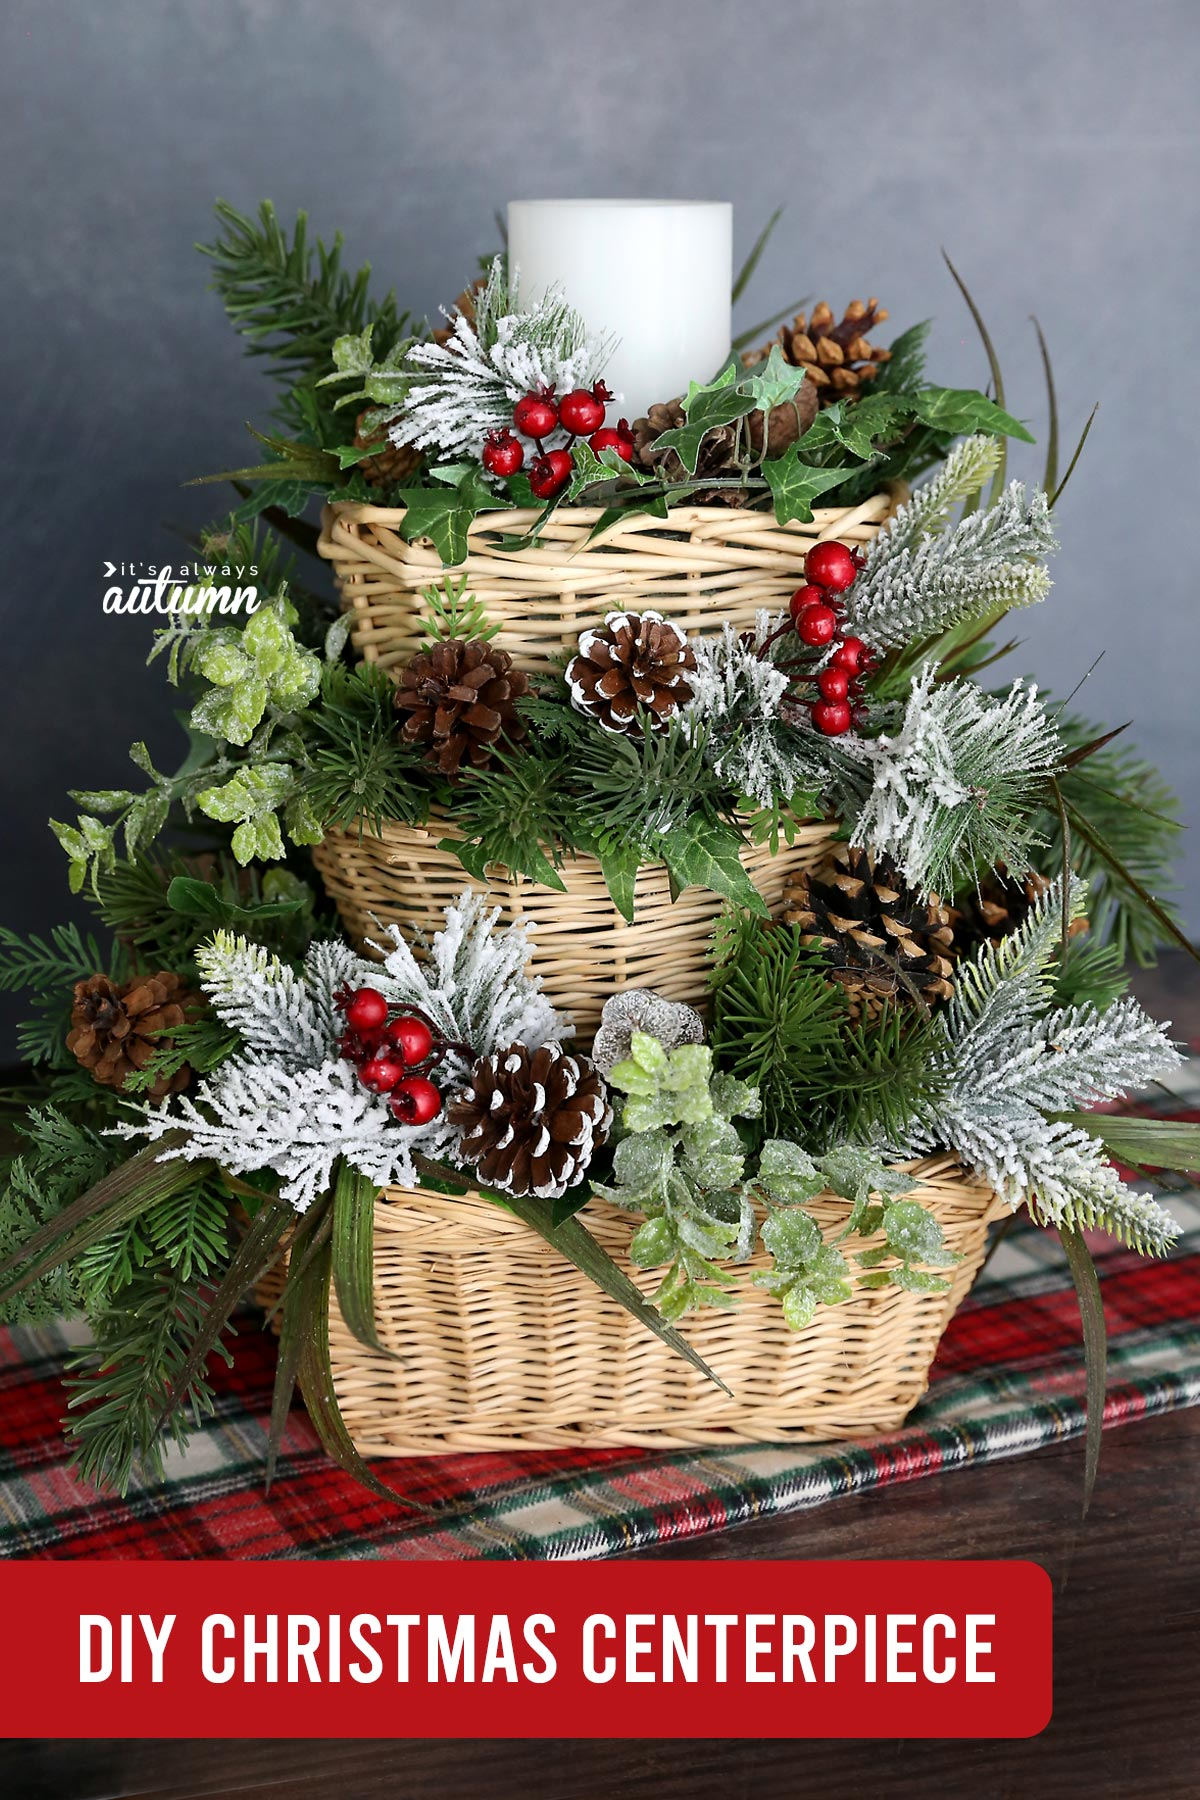 DIY Christmas centerpiece made with three wicker baskets stacked on top of each other and filled in with faux greenery and a candle on top